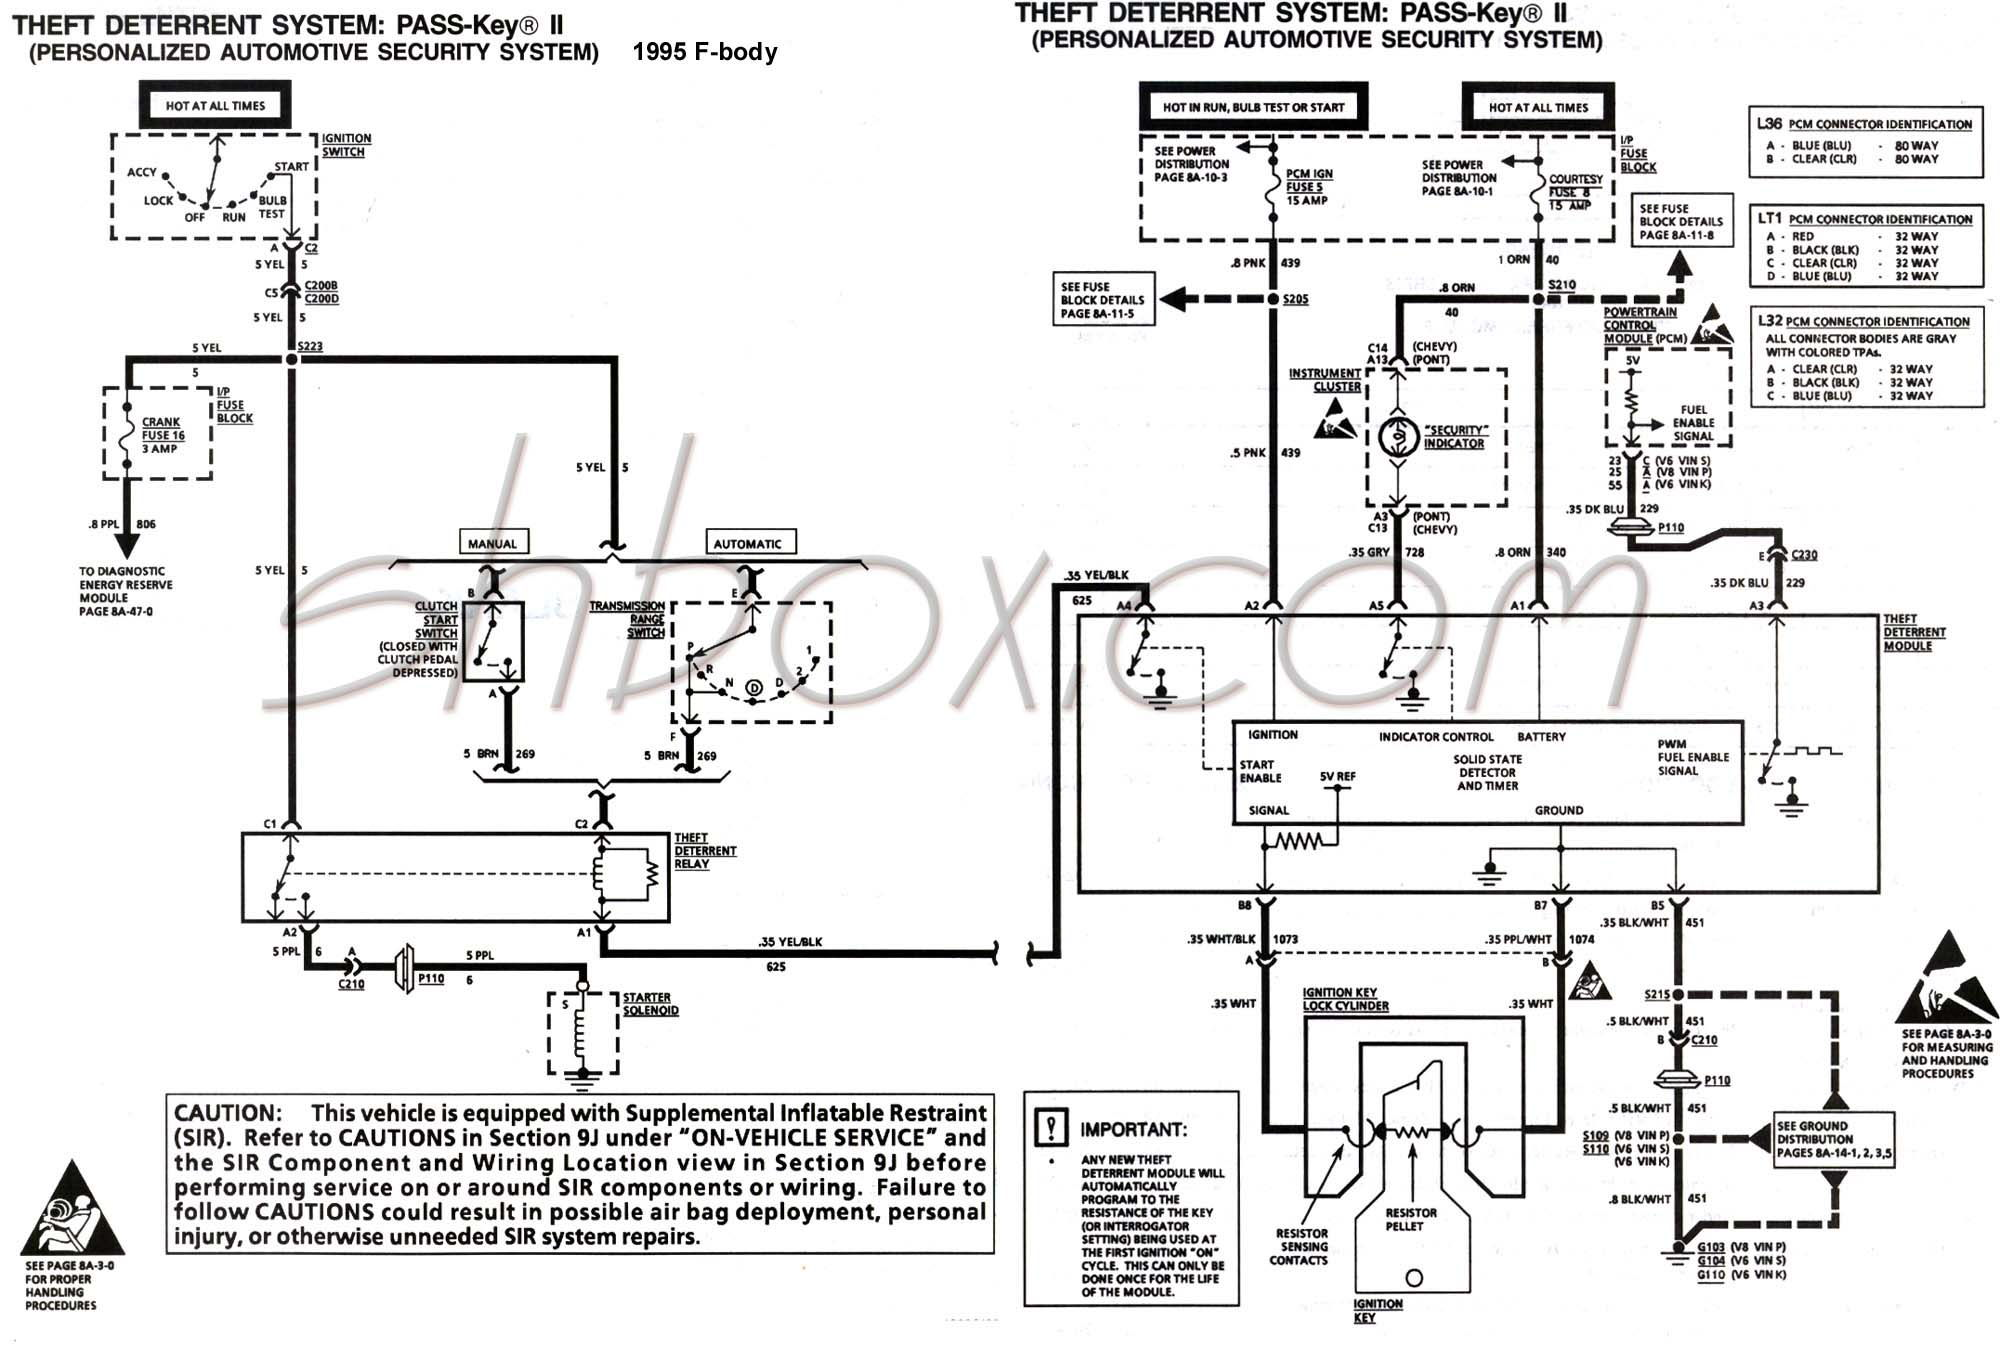 Diesel Engine In Line Injection System in addition 4 3 Vortec Wiring Diagram Coil besides Fiat Fiorino Mk3 Fiat Qubo Od 2007 Roku Bezpieczniki Schemat likewise Lexus Windshield Wiper Relay Fuse besides Chevrolet Chevy Van 3 8 1966 Specs And Images. on auto ignition diagram